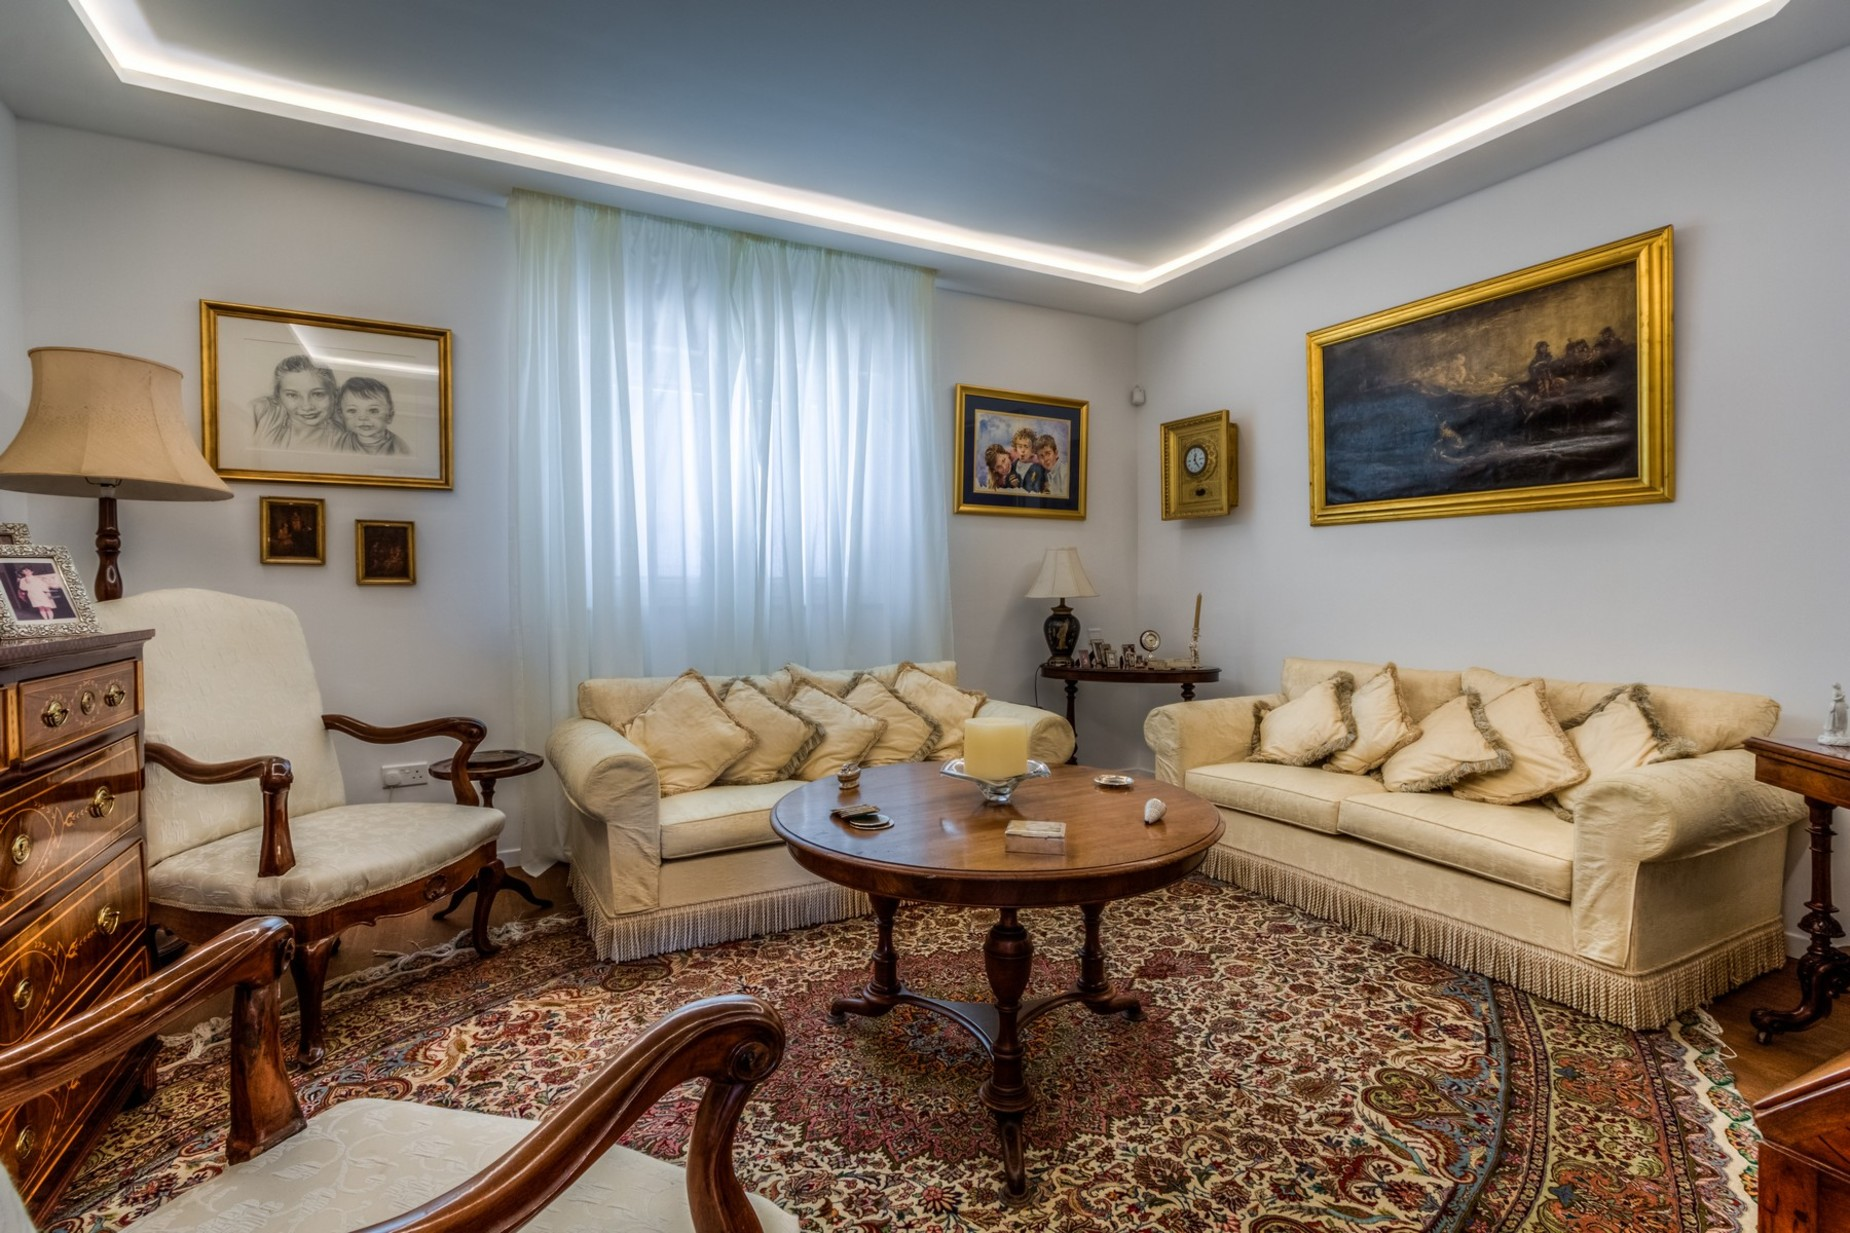 5 bed Villa For Sale in Madliena, Madliena - thumb 2